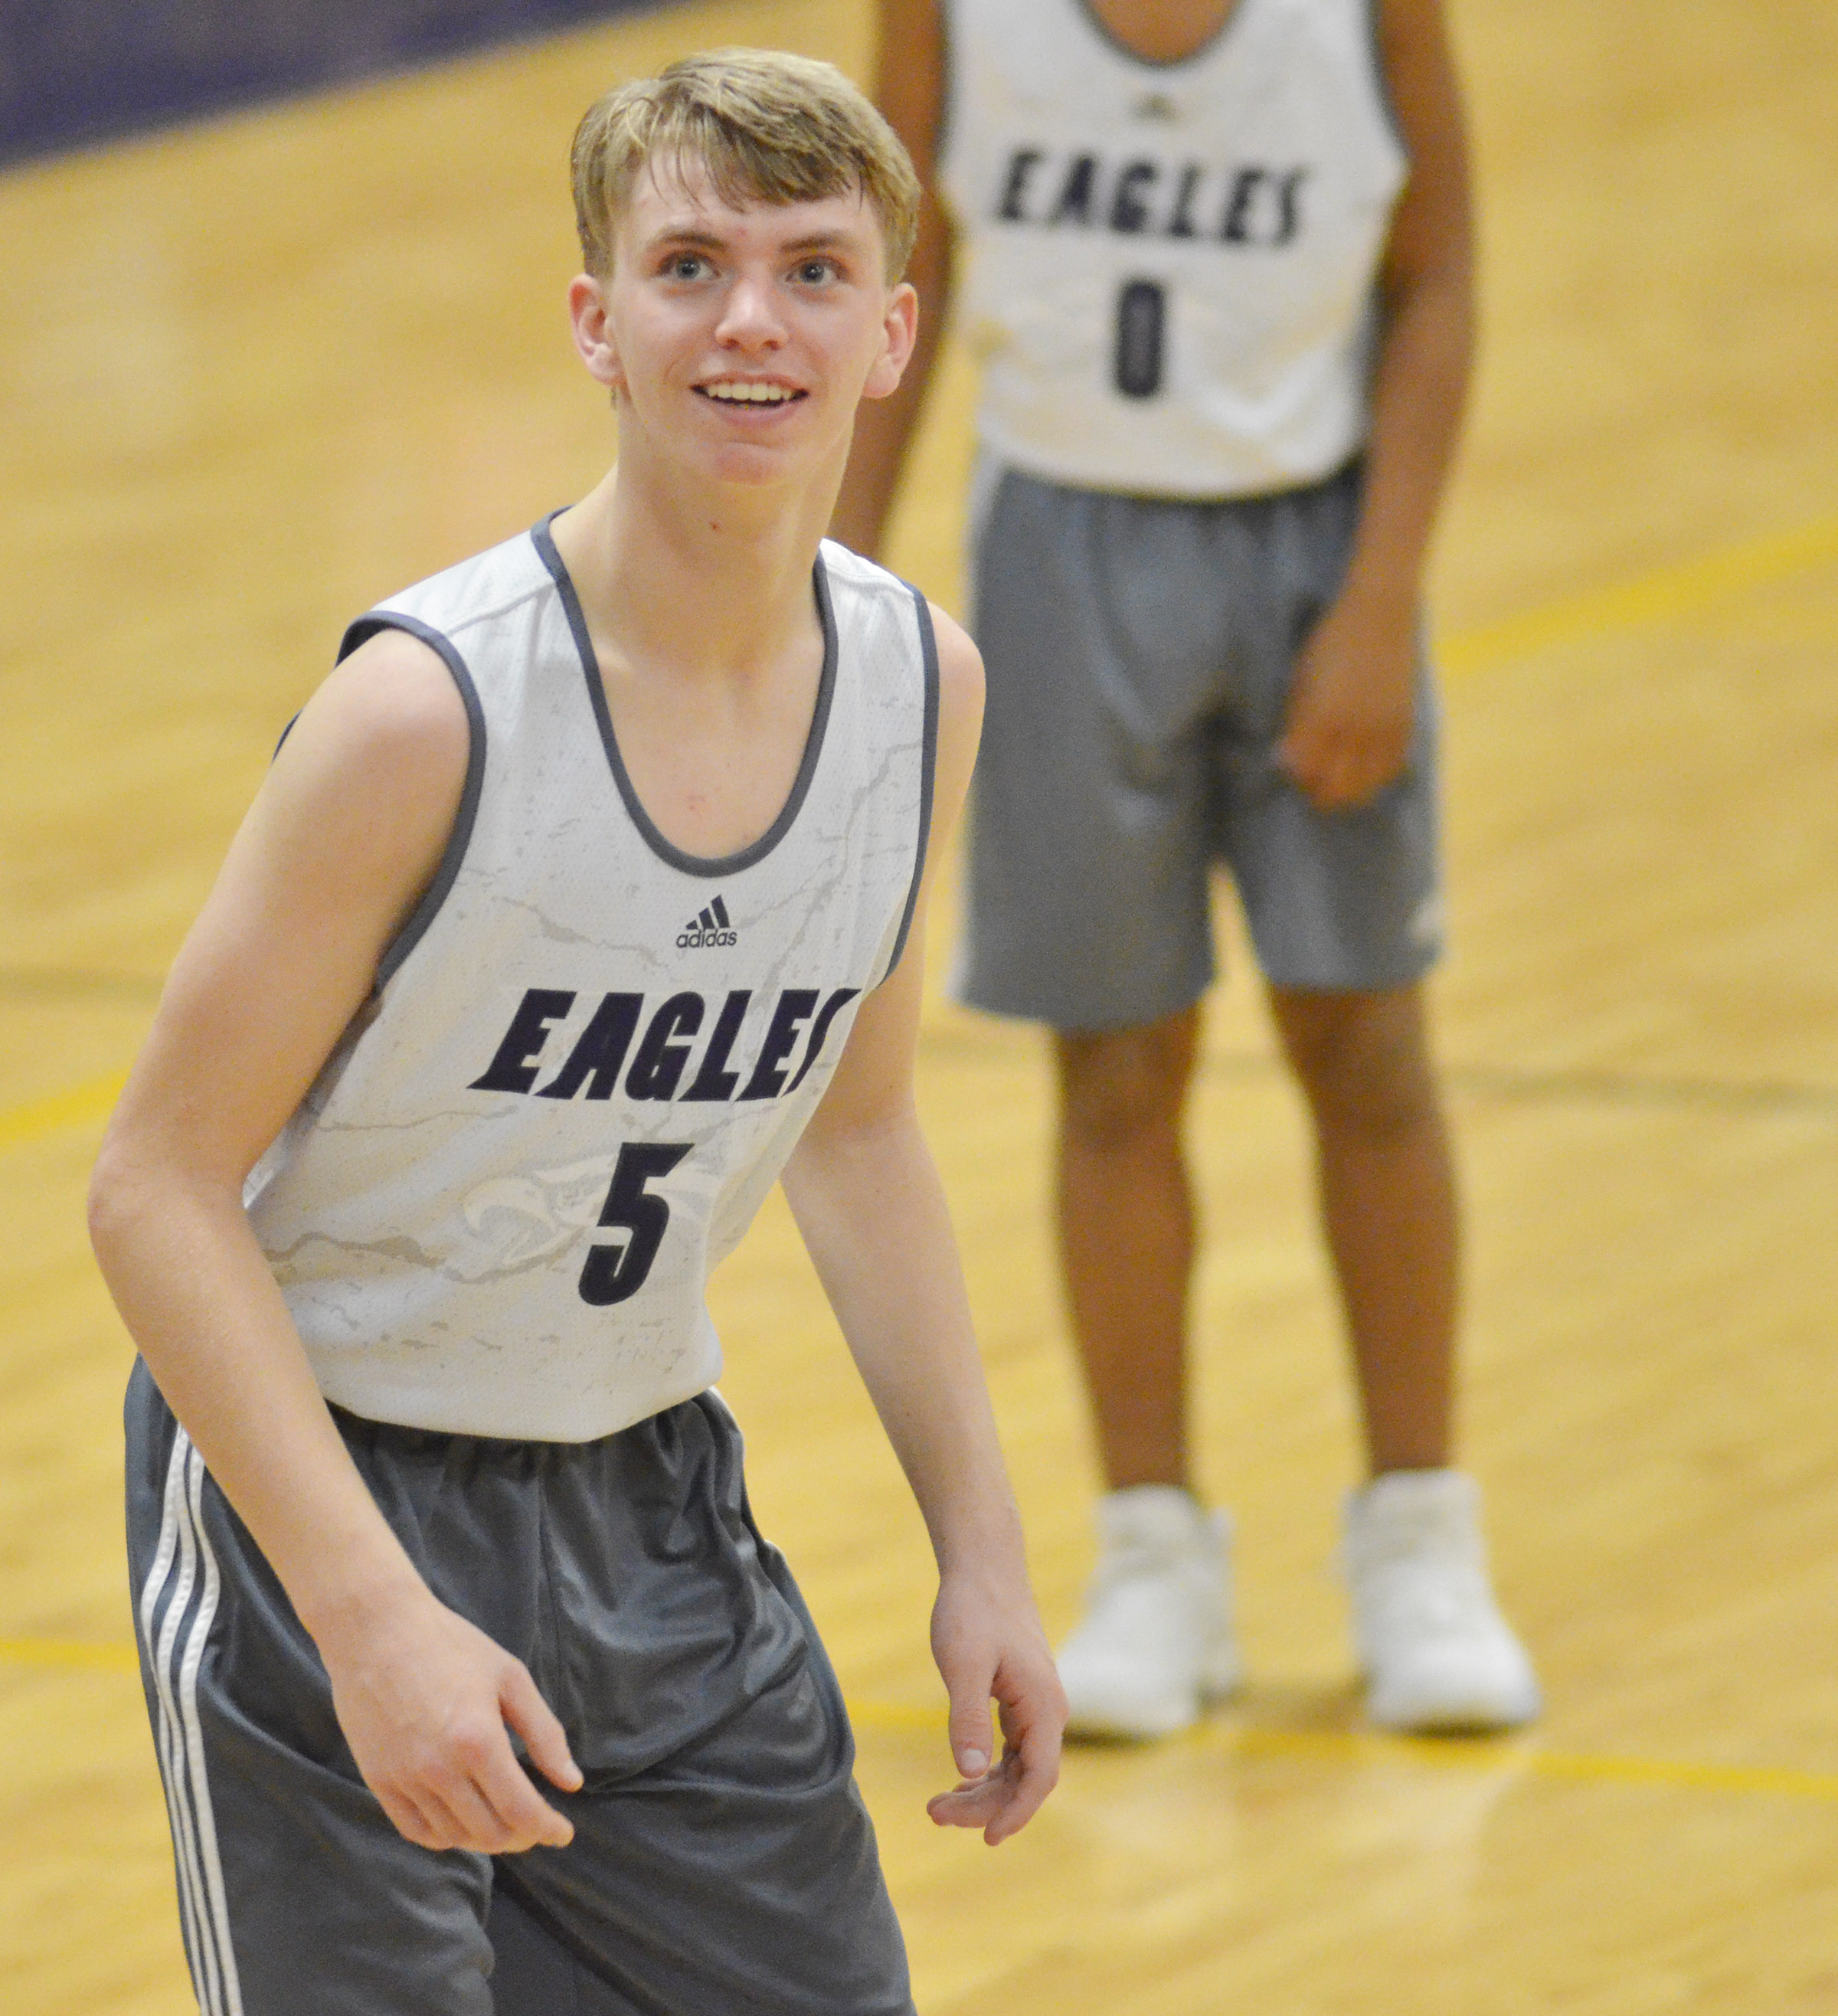 CHS freshman Arren Hash smiles as he watches a teammate shoot the ball.